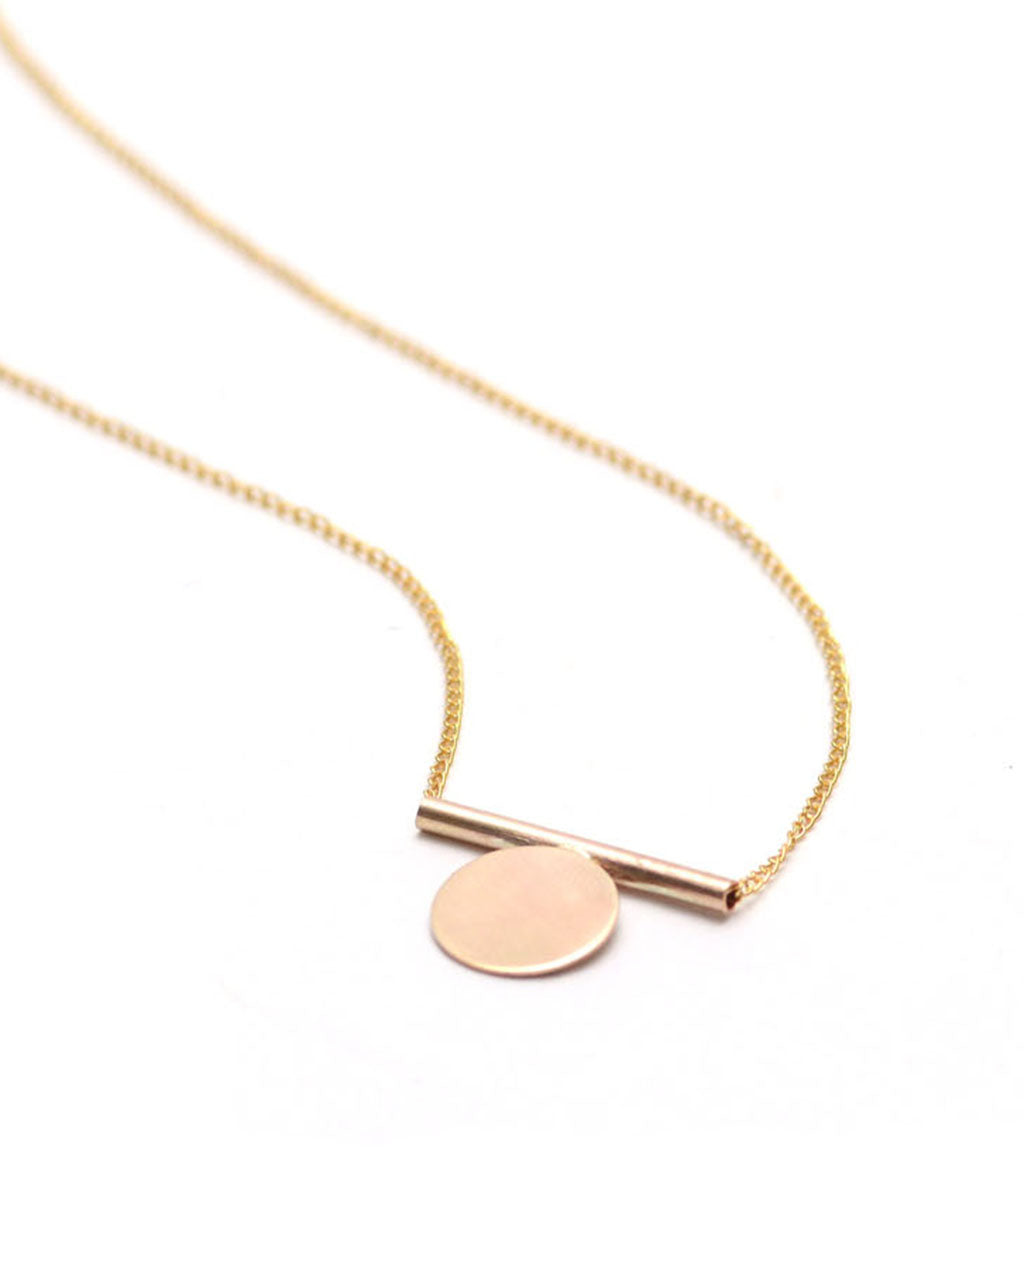 necklaces minimal circle triangle l simple v jewels detailed follow modern look statement echzya charm necklace like geometric jewelry